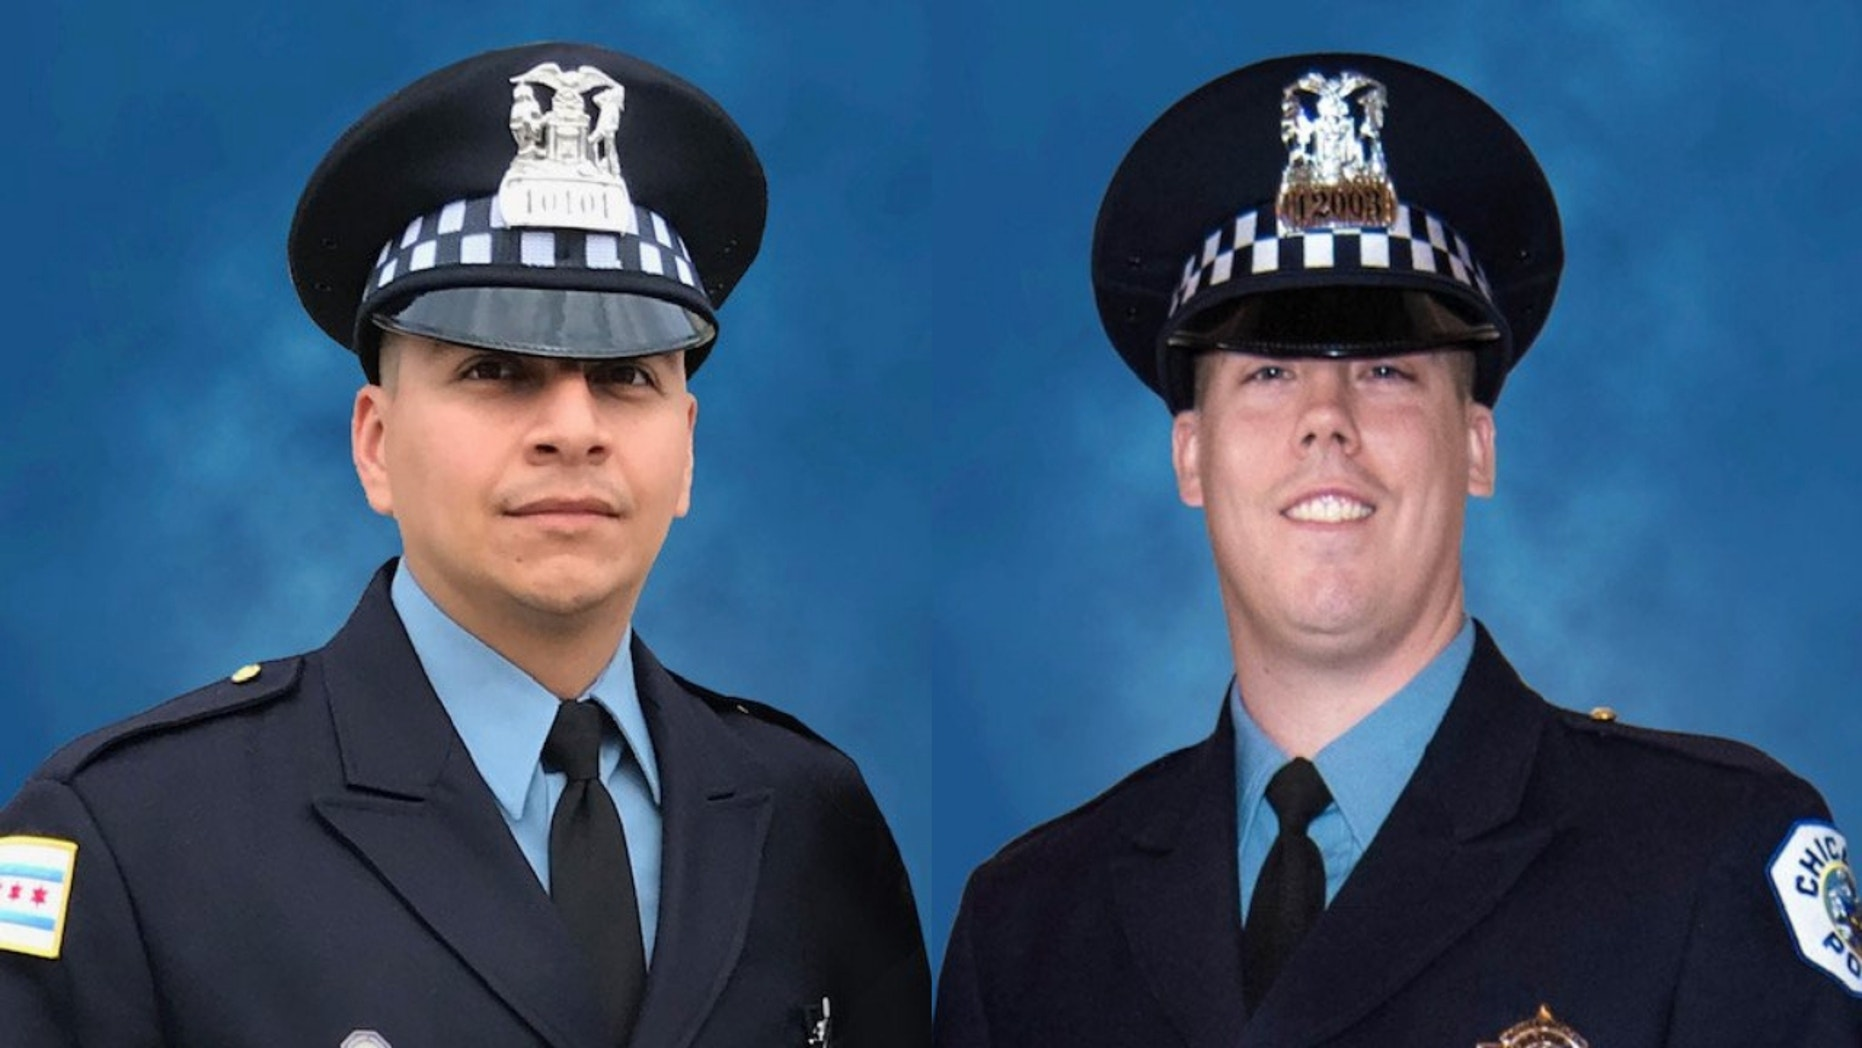 Eduardo Marmolejo, 36, and Conrad Gary, 31, were killed when they were struck by a train while responding to a call of shots fired, officials said.